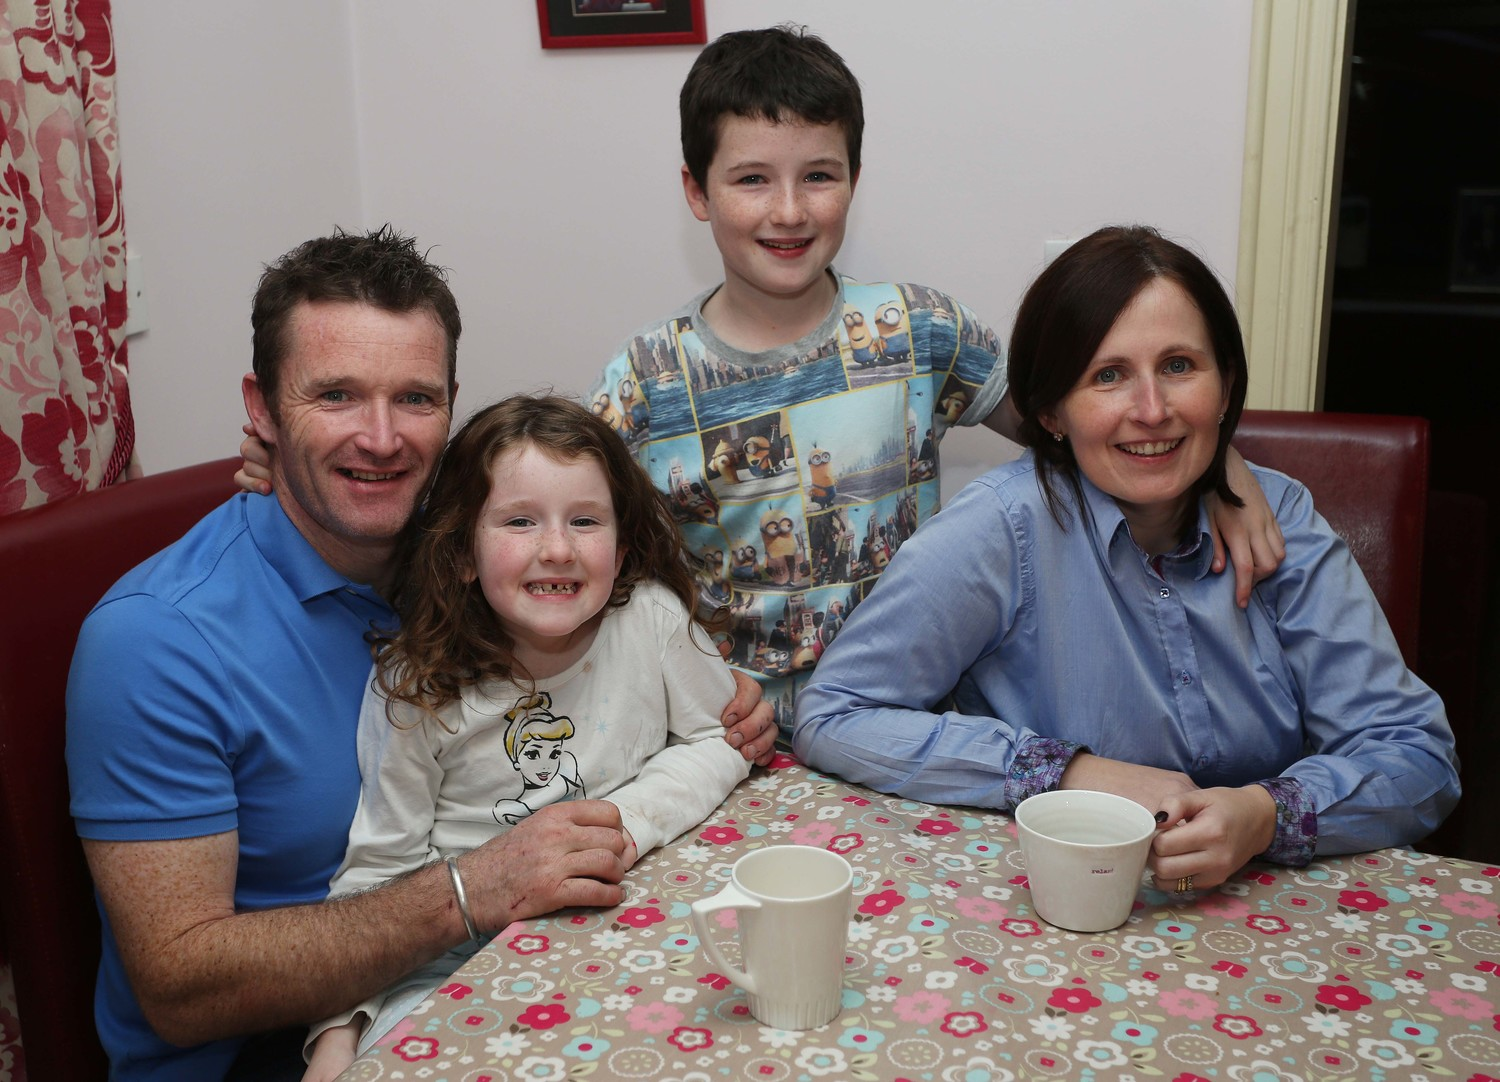 Mickey, Annie, John & Moira McNulty. Photograph by Lorcan Doherty.